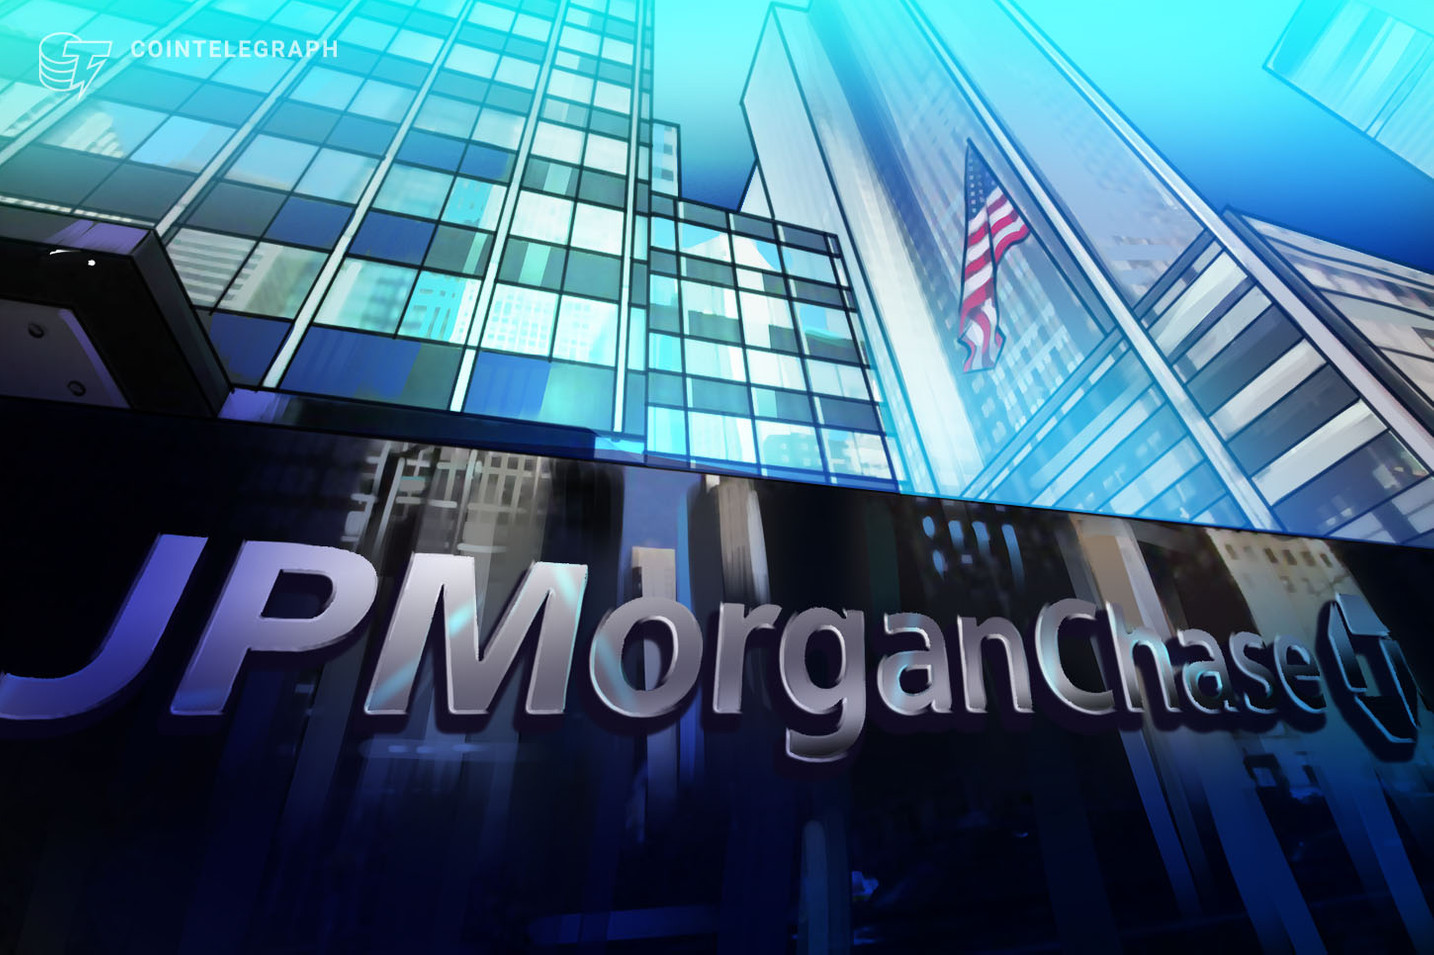 Crypto is 'poorest hedge' for drawdowns in equities, JPMorgan analysts say